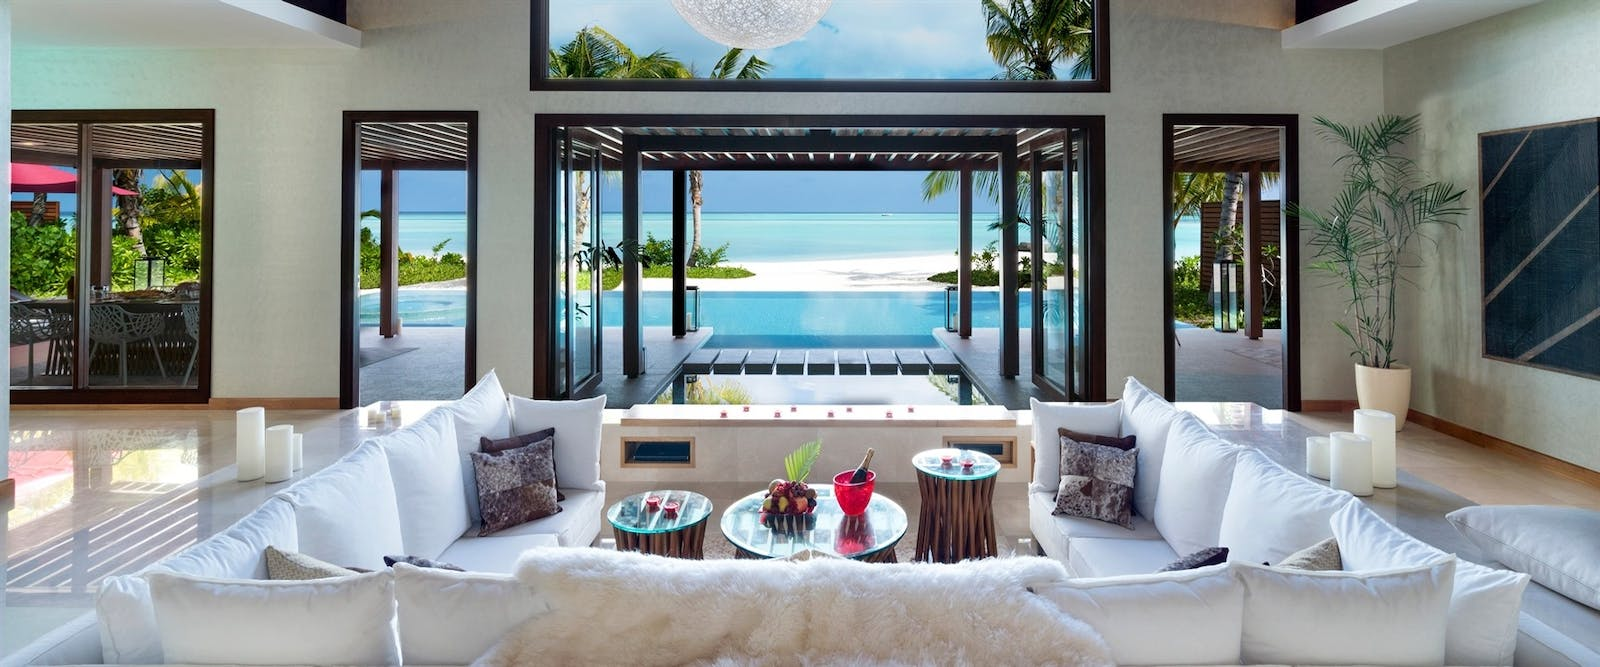 Three Bedroom Family Beach Pavilion Living Room at Niyama Private Islands, Maldives, Indian Ocean